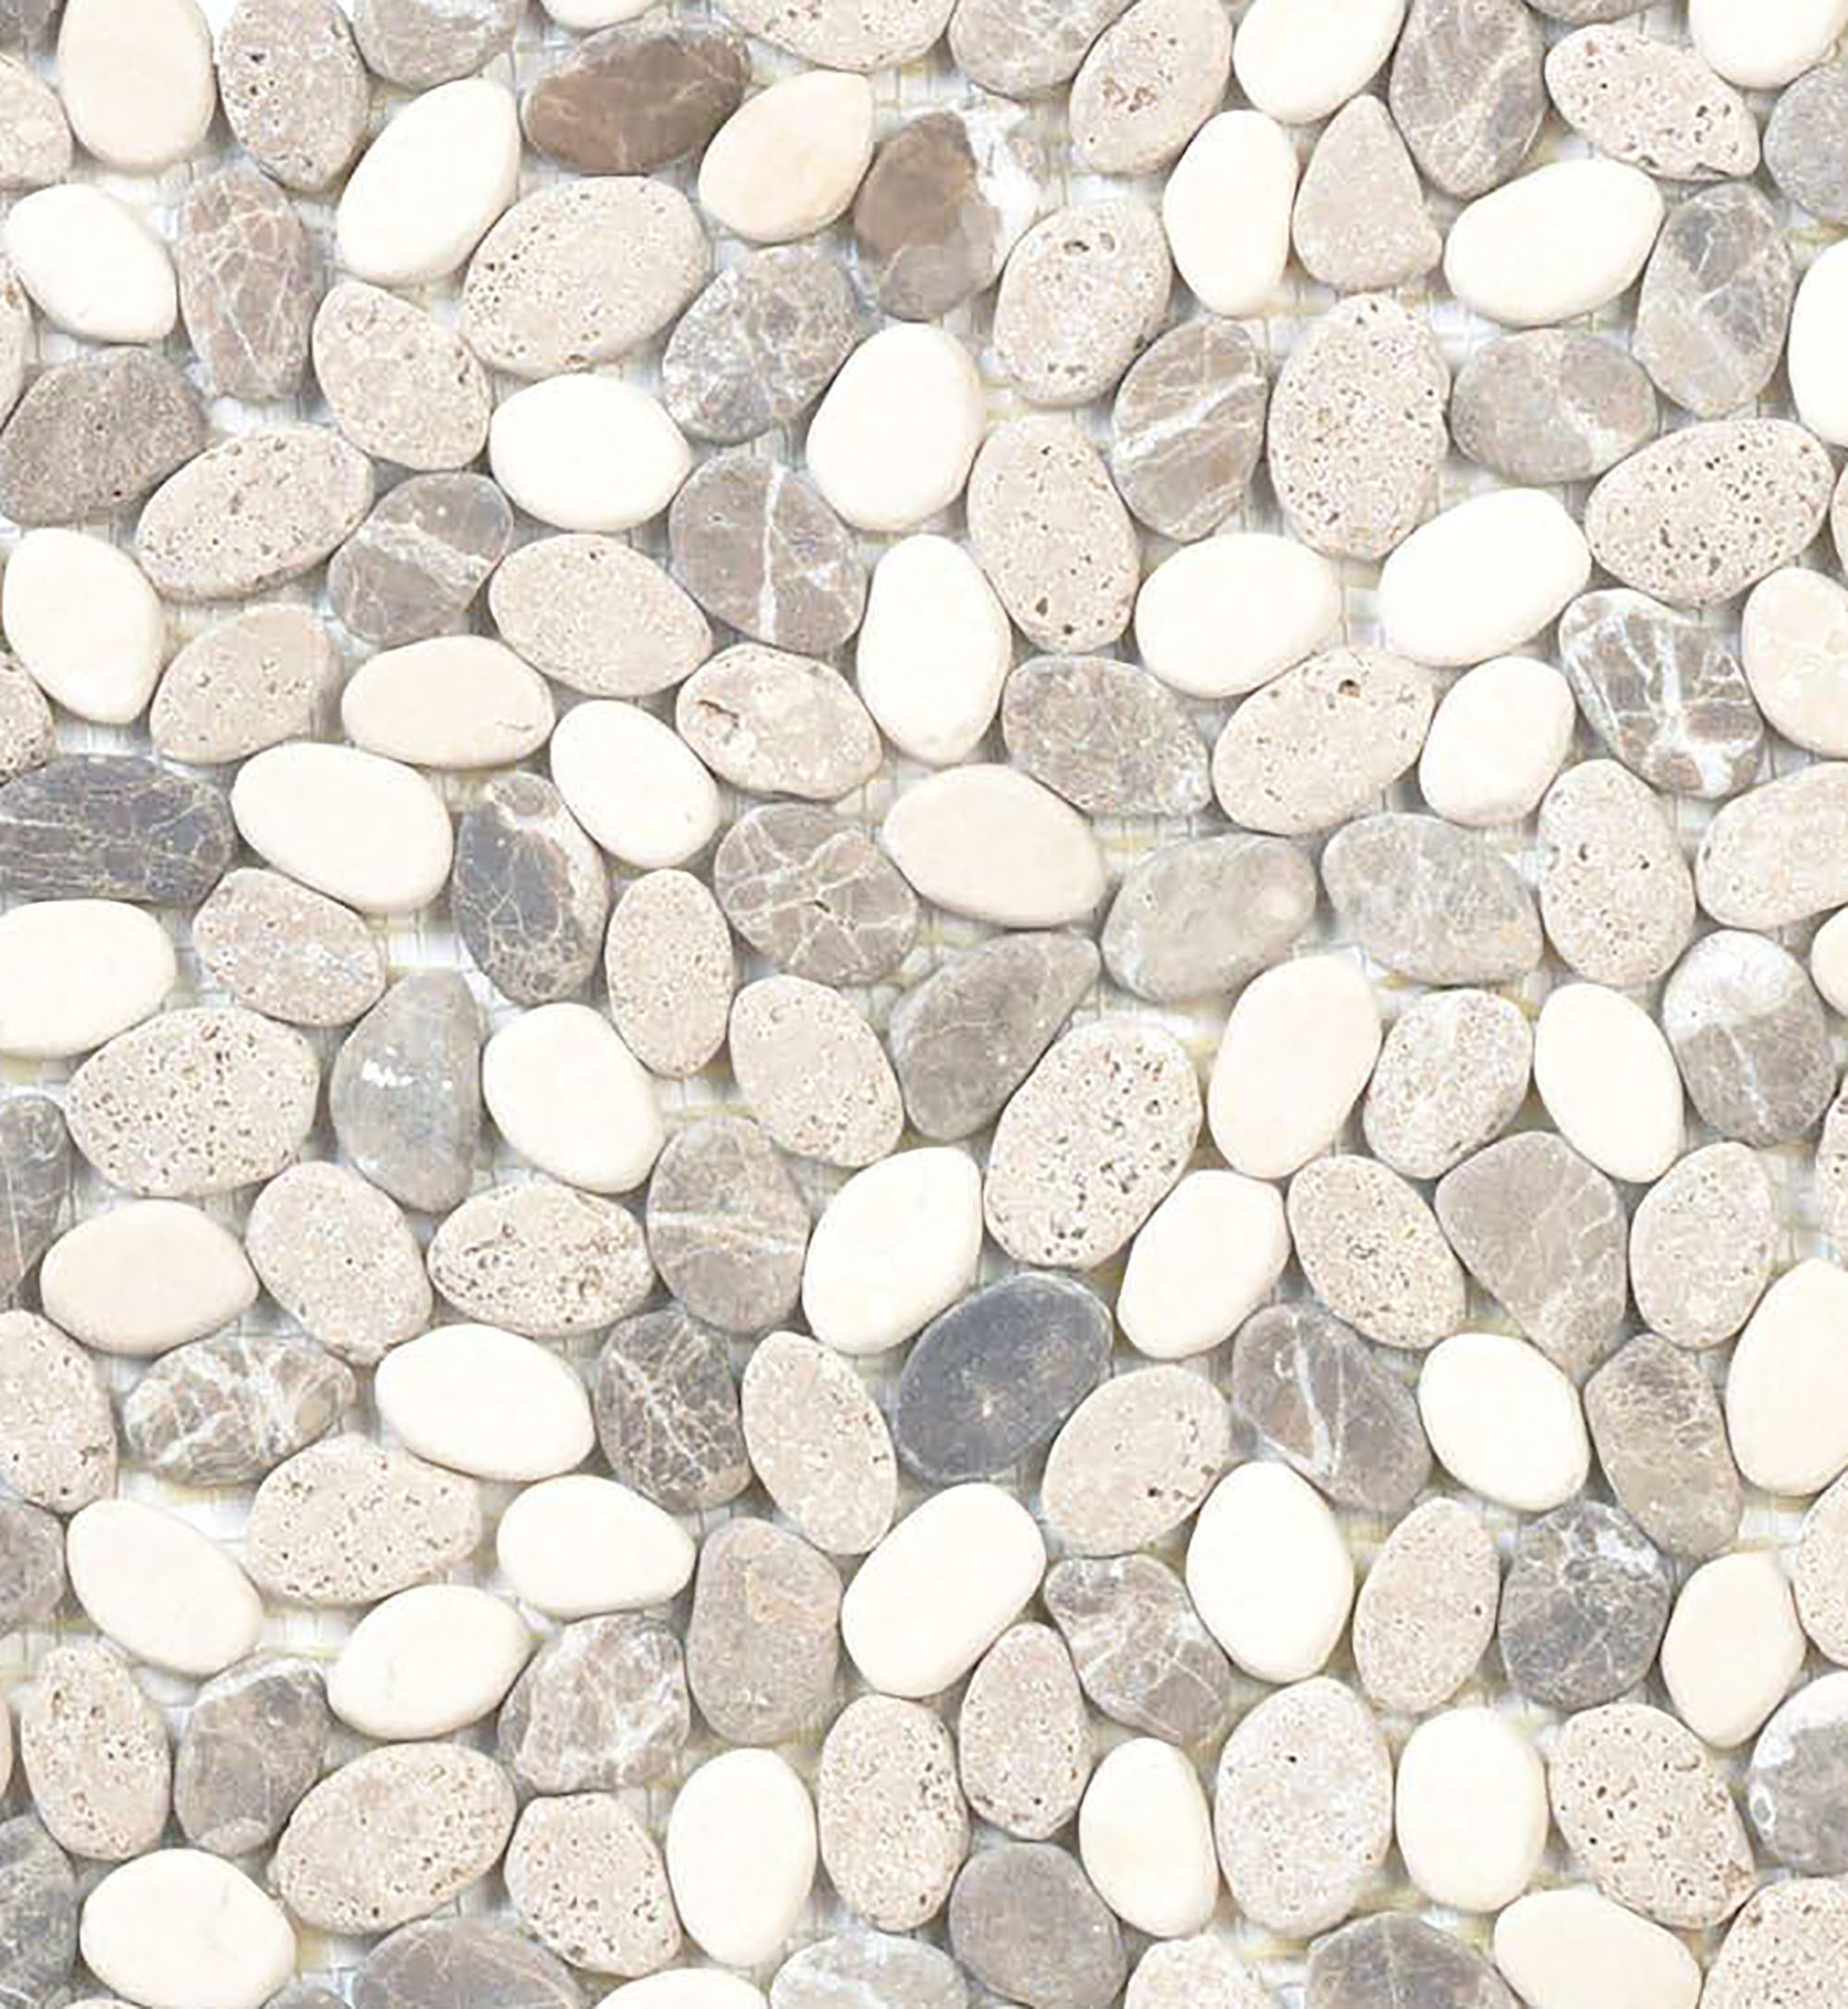 Pebble shower floors just say no jones sweet homes dailygadgetfo Choice Image